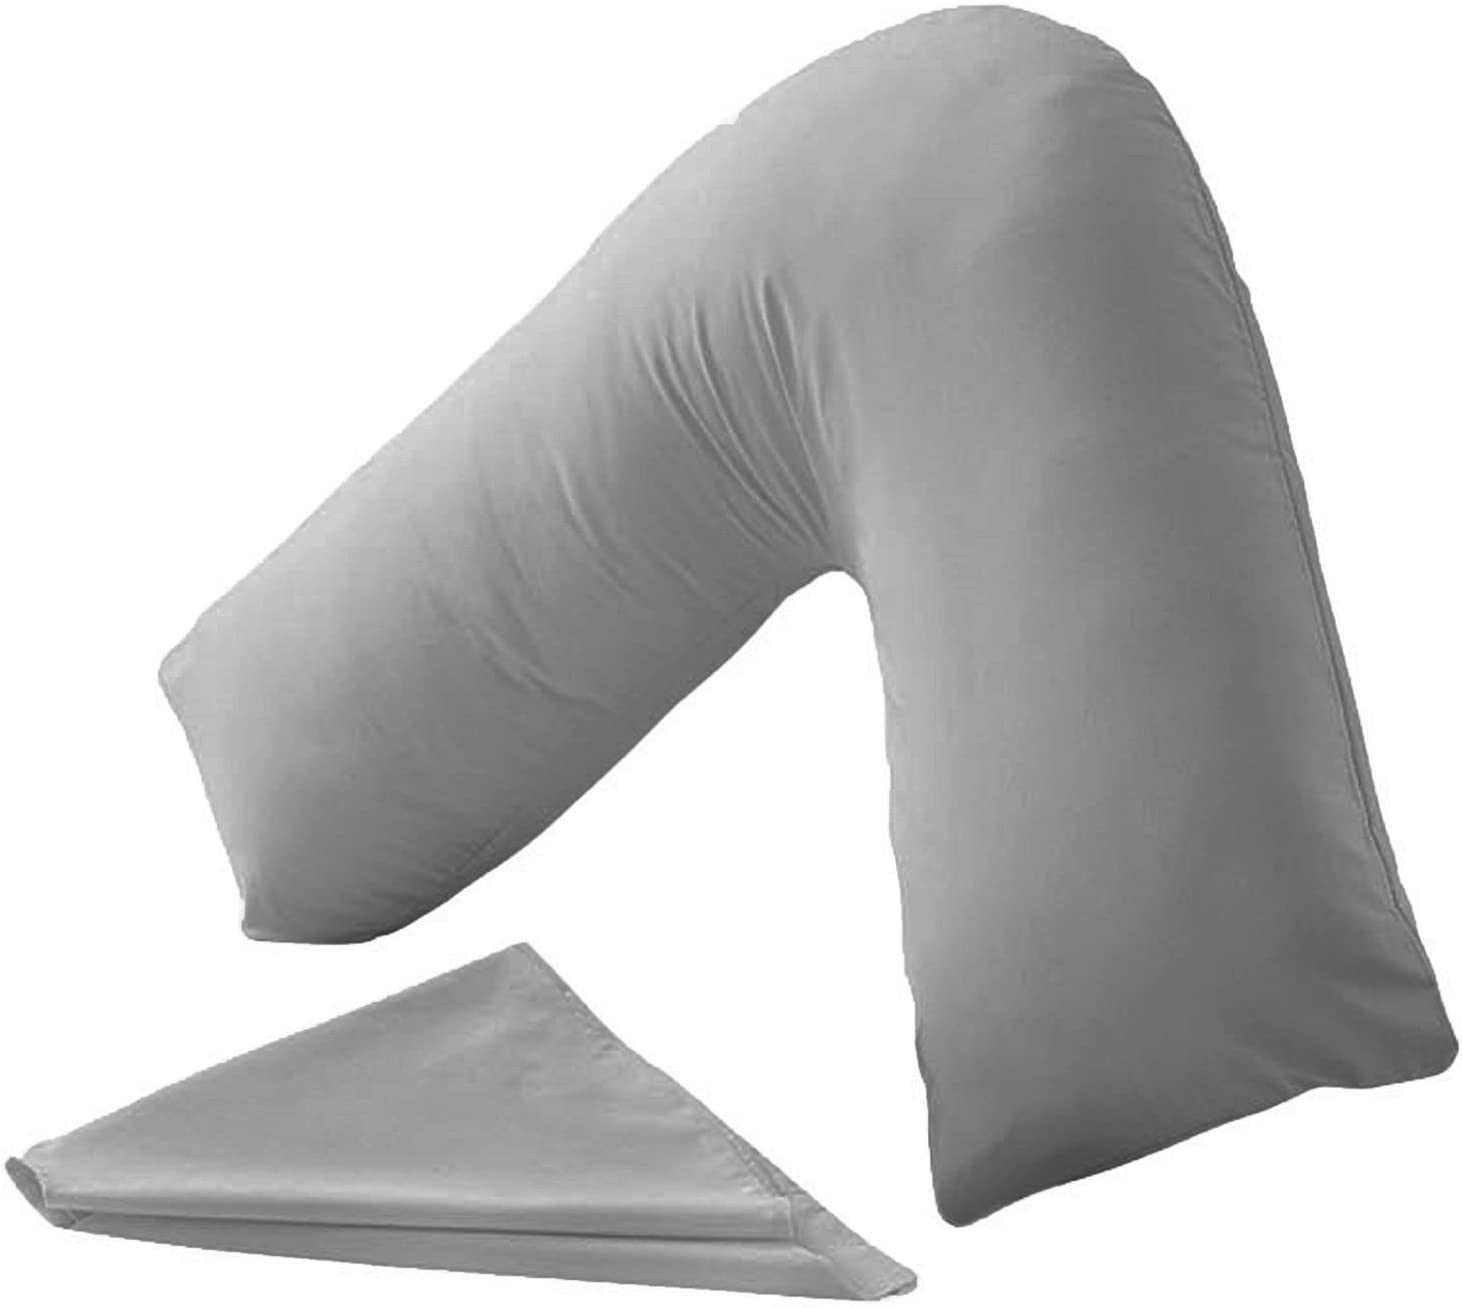 Hollowfibre Orthopedic V Shaped Pillow Back Neck Support Or Matching Pillow Case